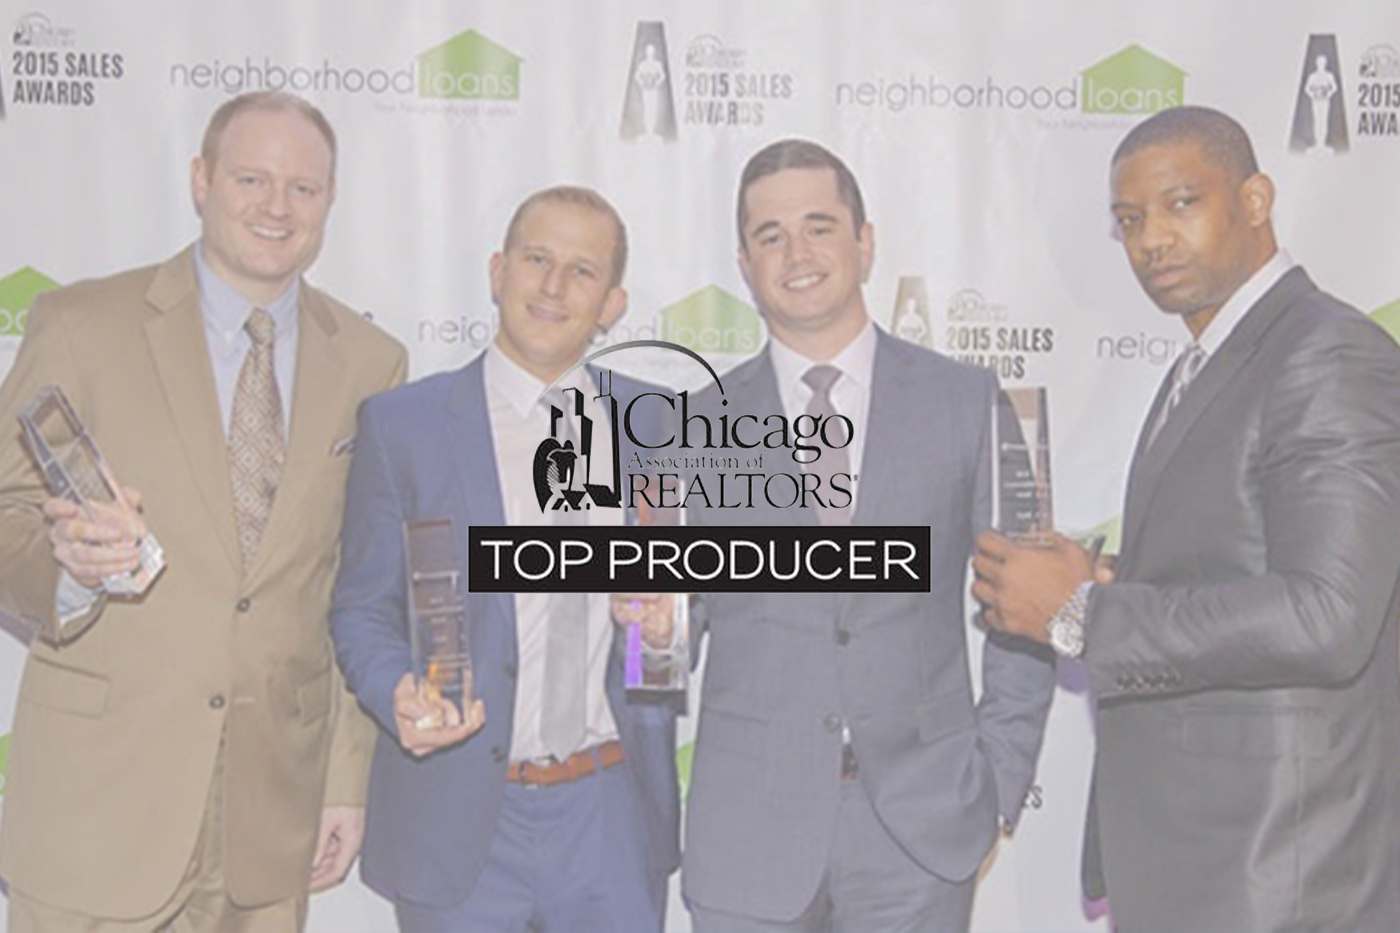 CommercialForum a division of Chicago Association of Realtors® (C.A.R.) Recognizes CRER Brokers as Top Chicago Commercial Producers in 2015